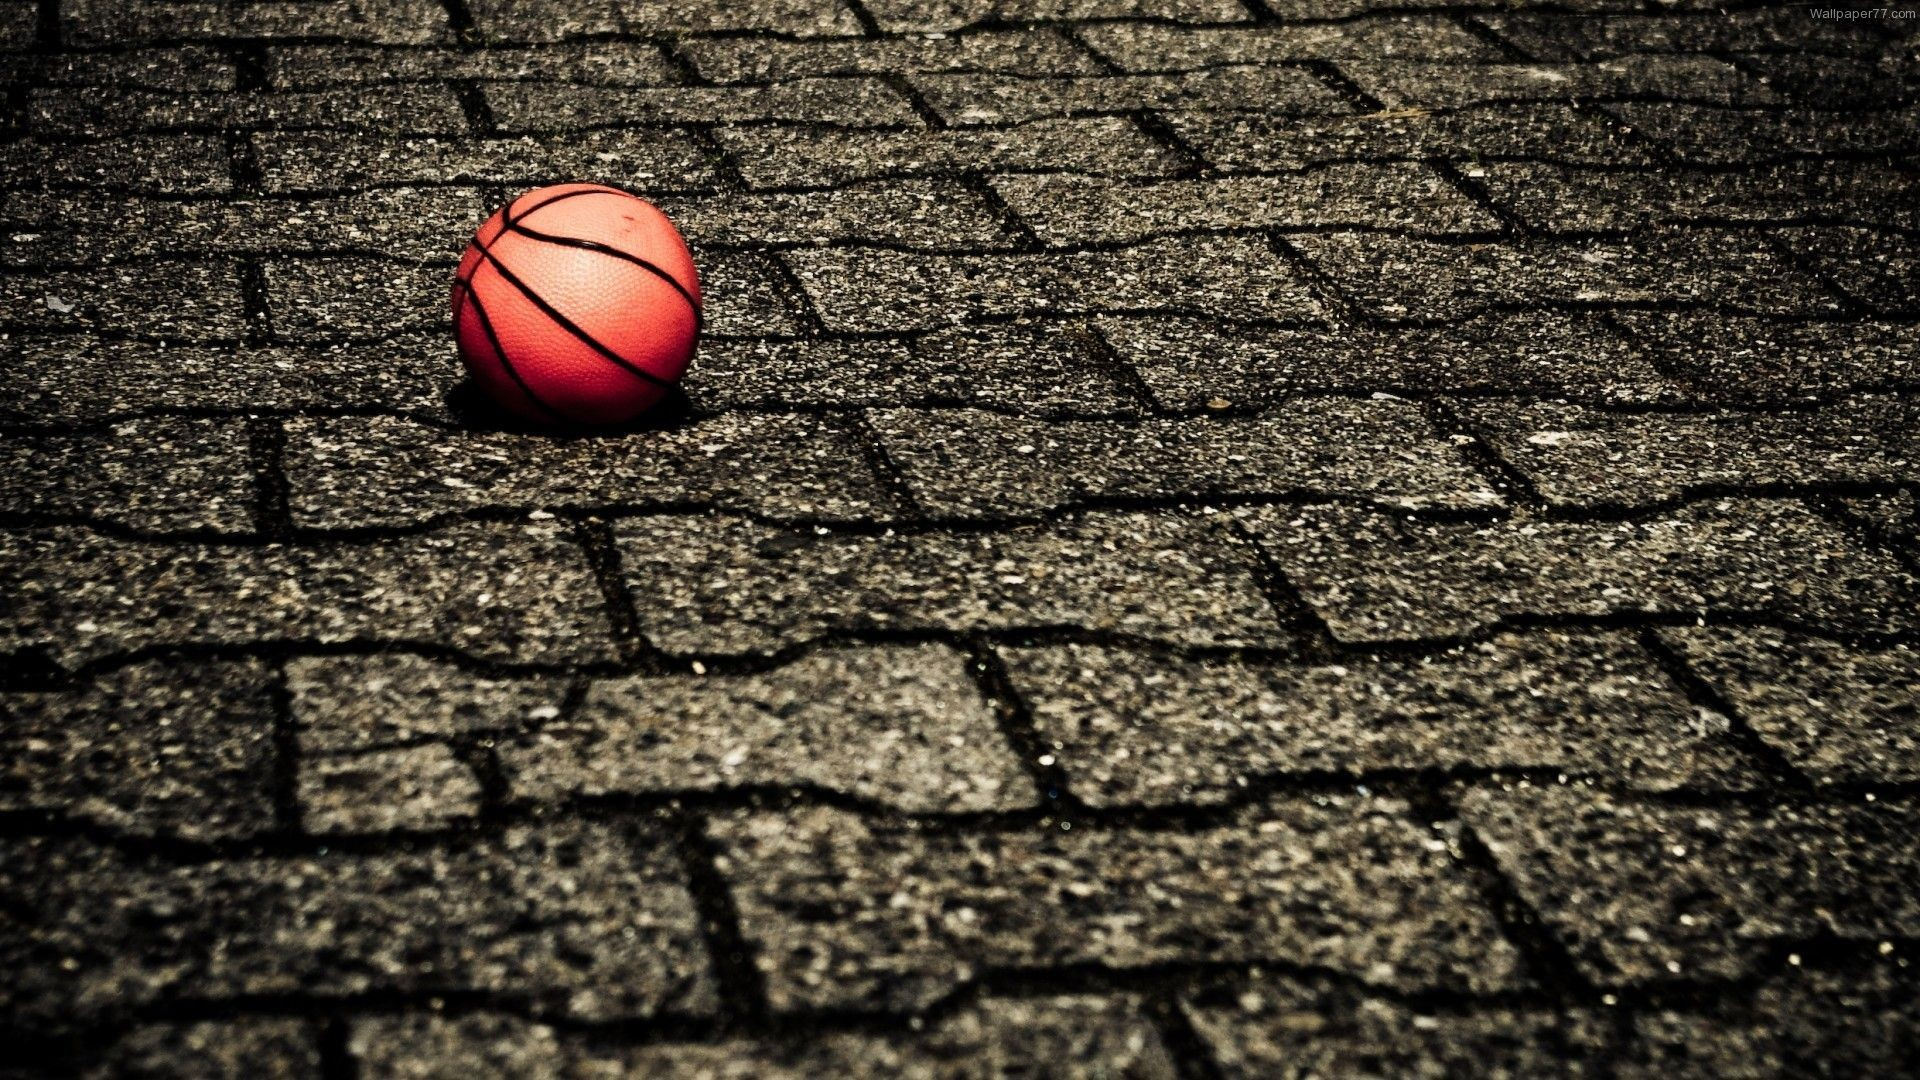 1920x1080 Awesome Basketball Wallpapers HD Free Download.